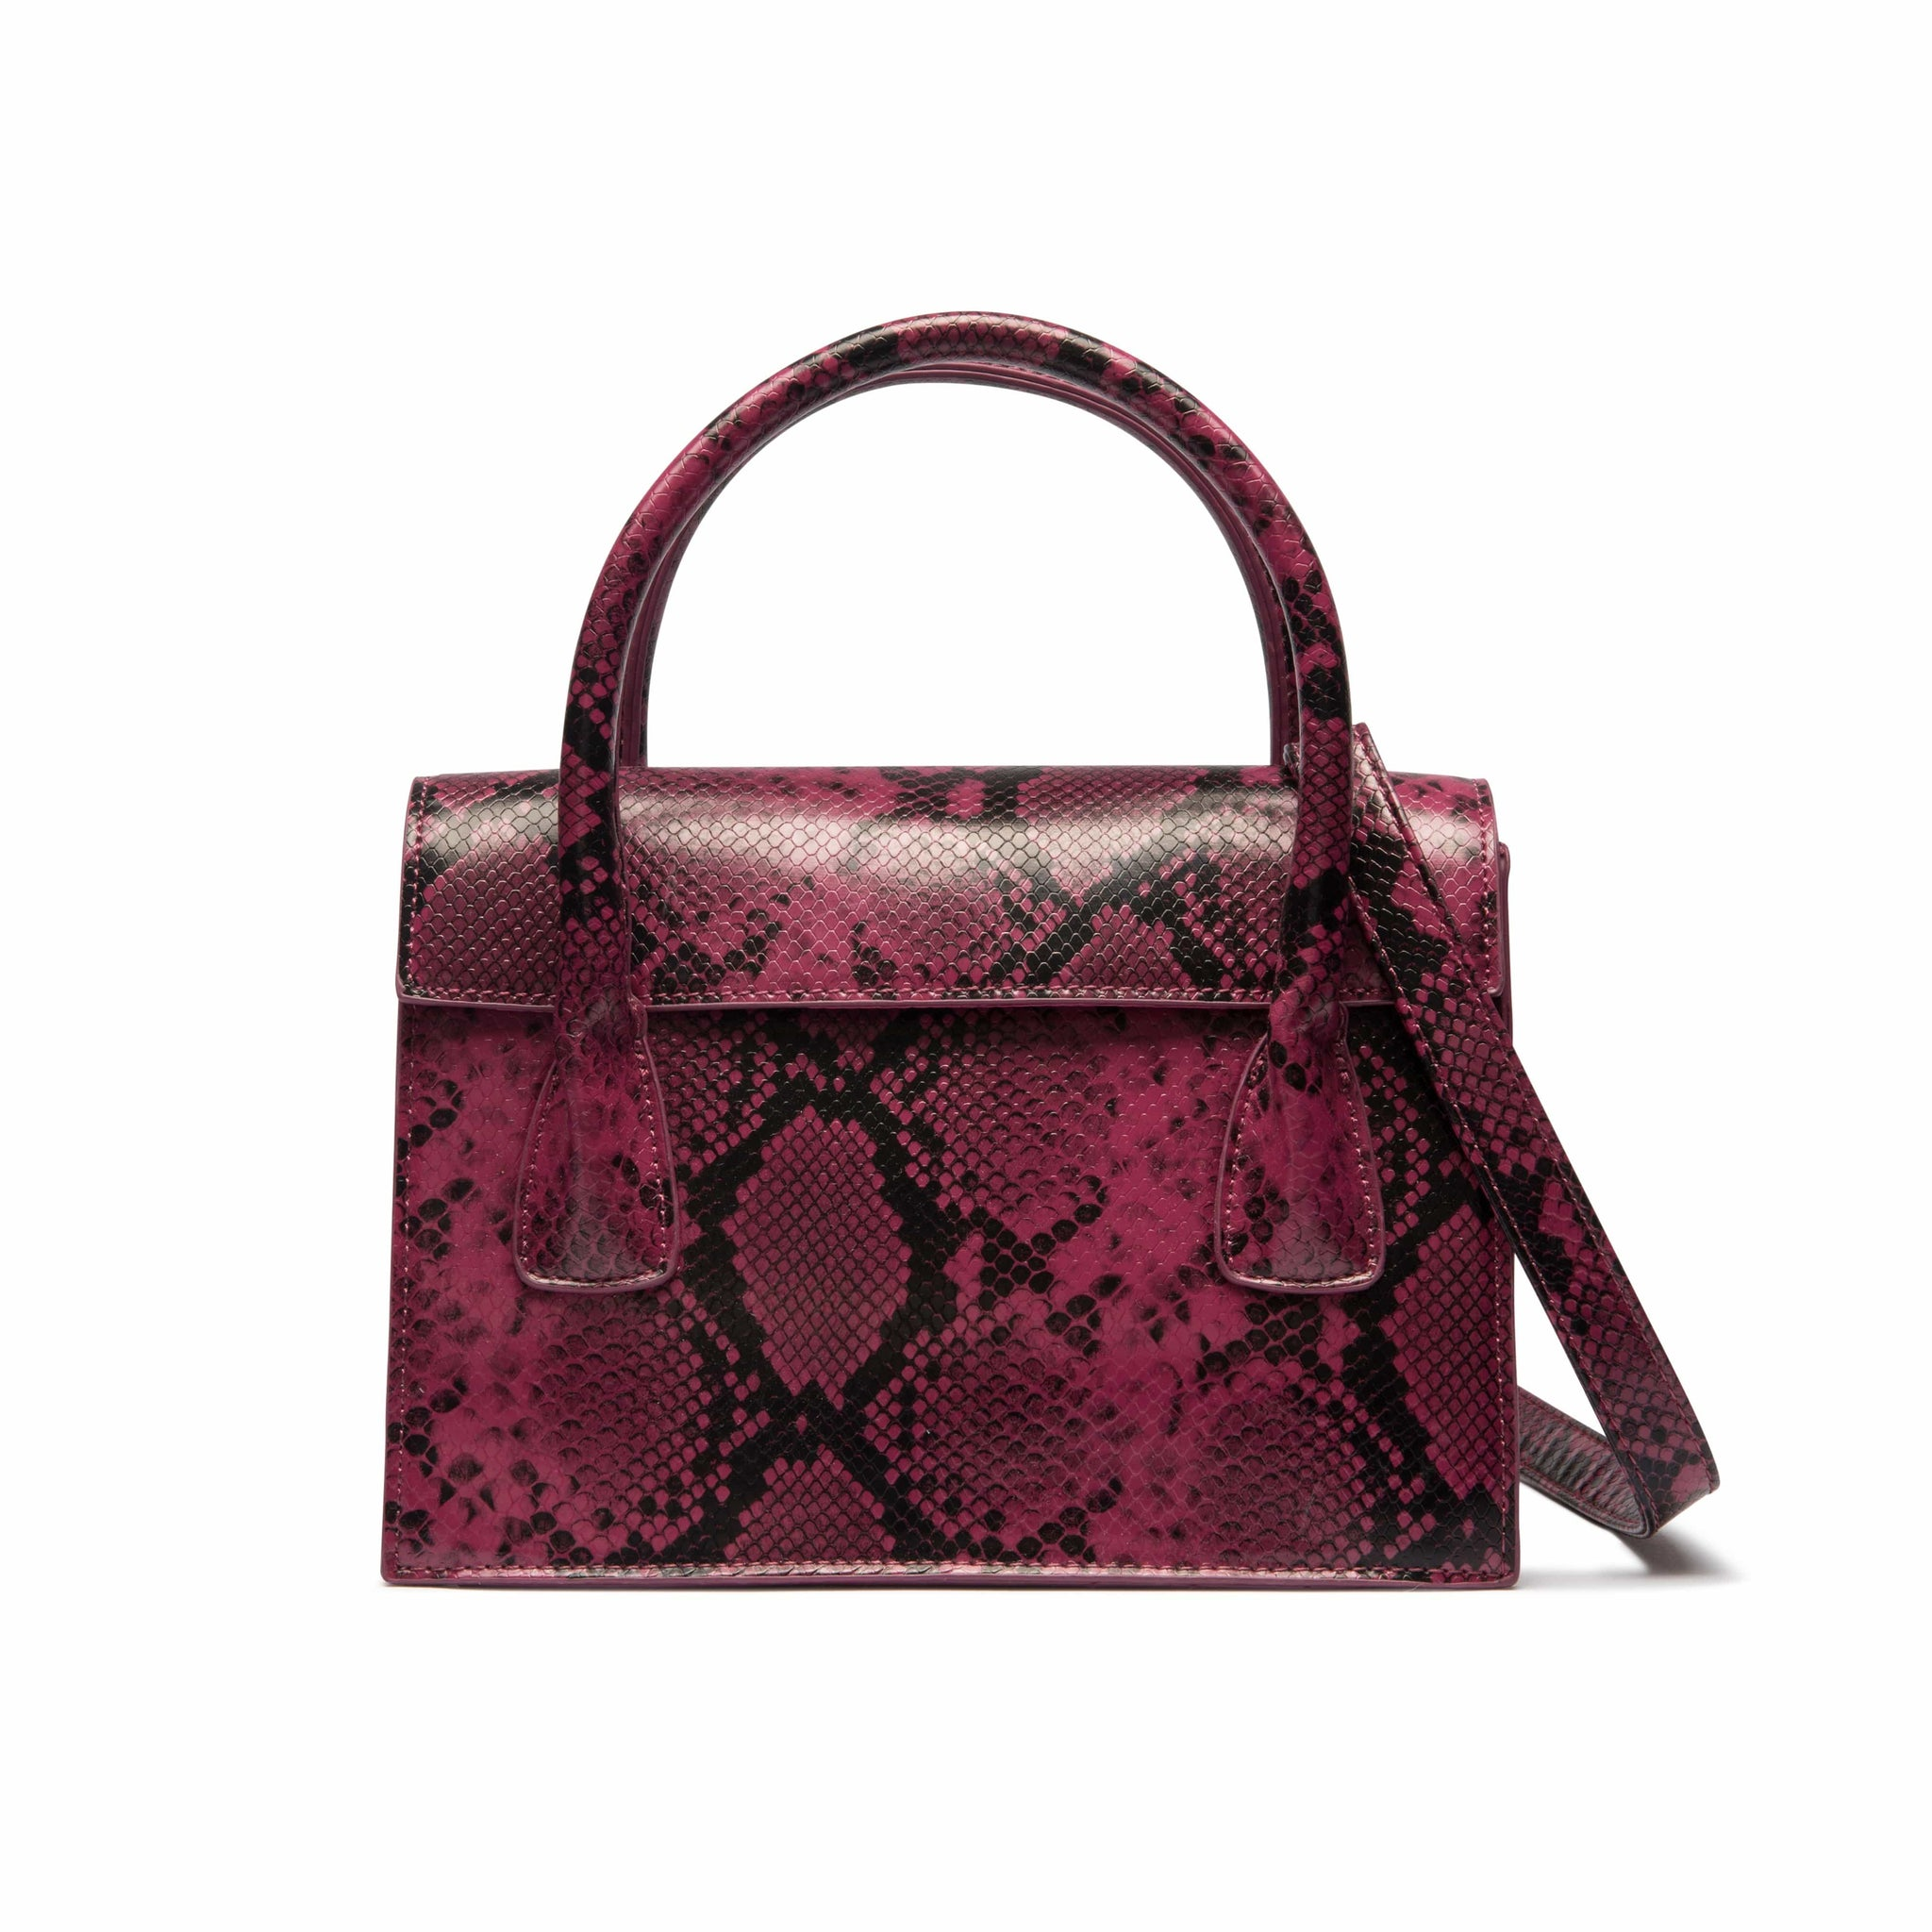 Arabella Crossbody Bag (Magenta/Black Snakeskin)